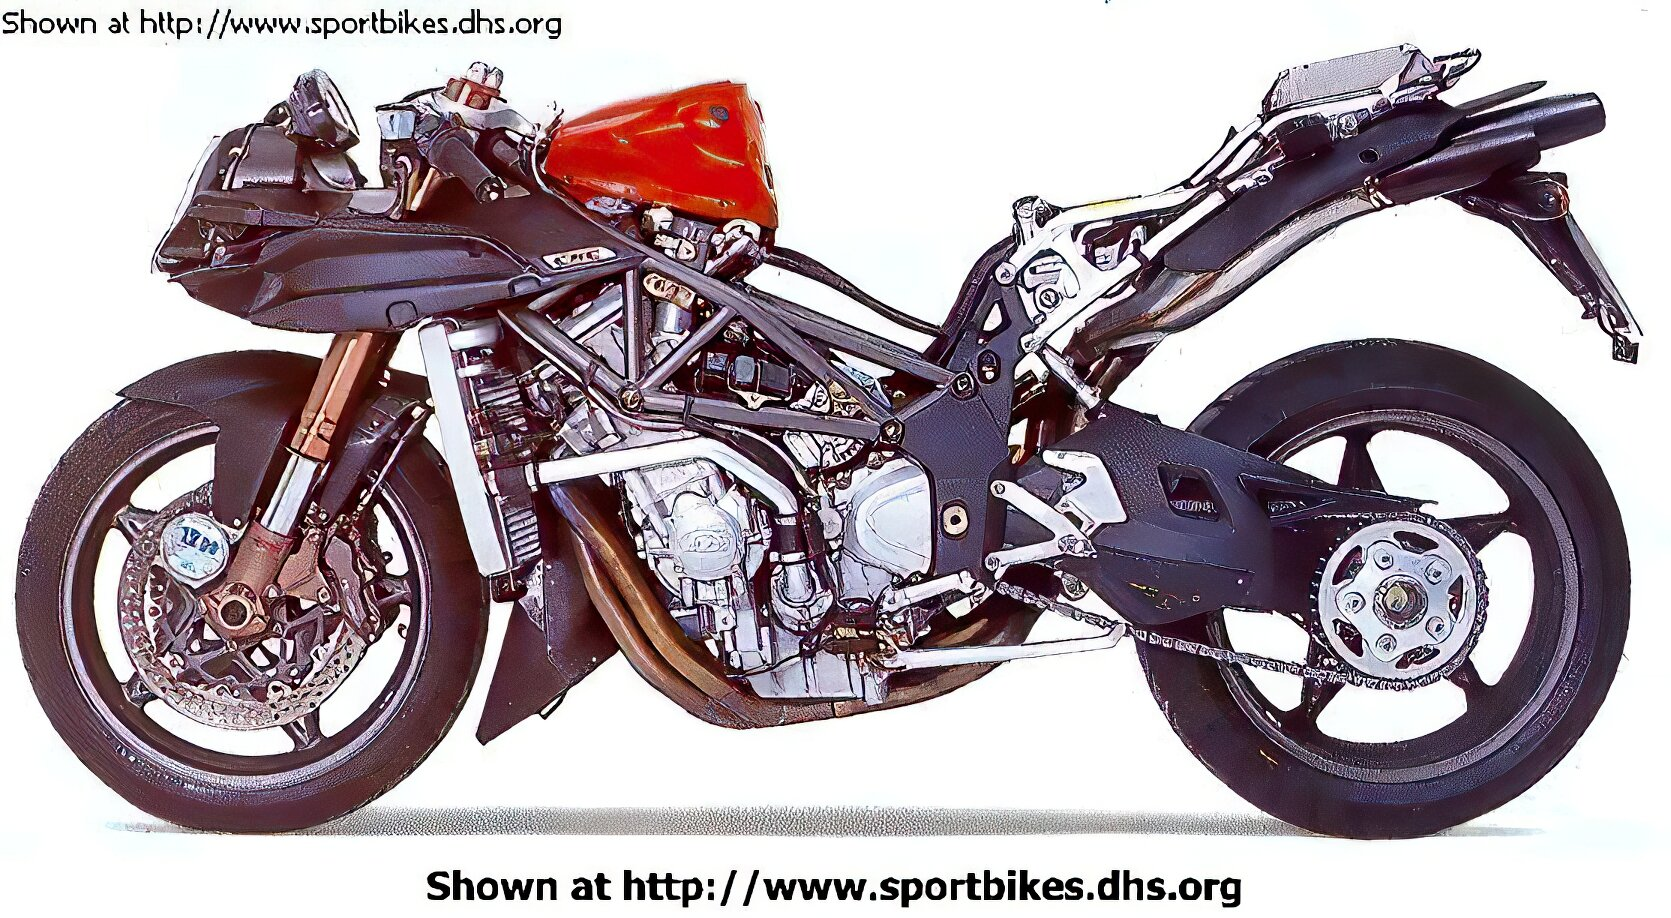 MV Agusta (all models) - ID: 6374